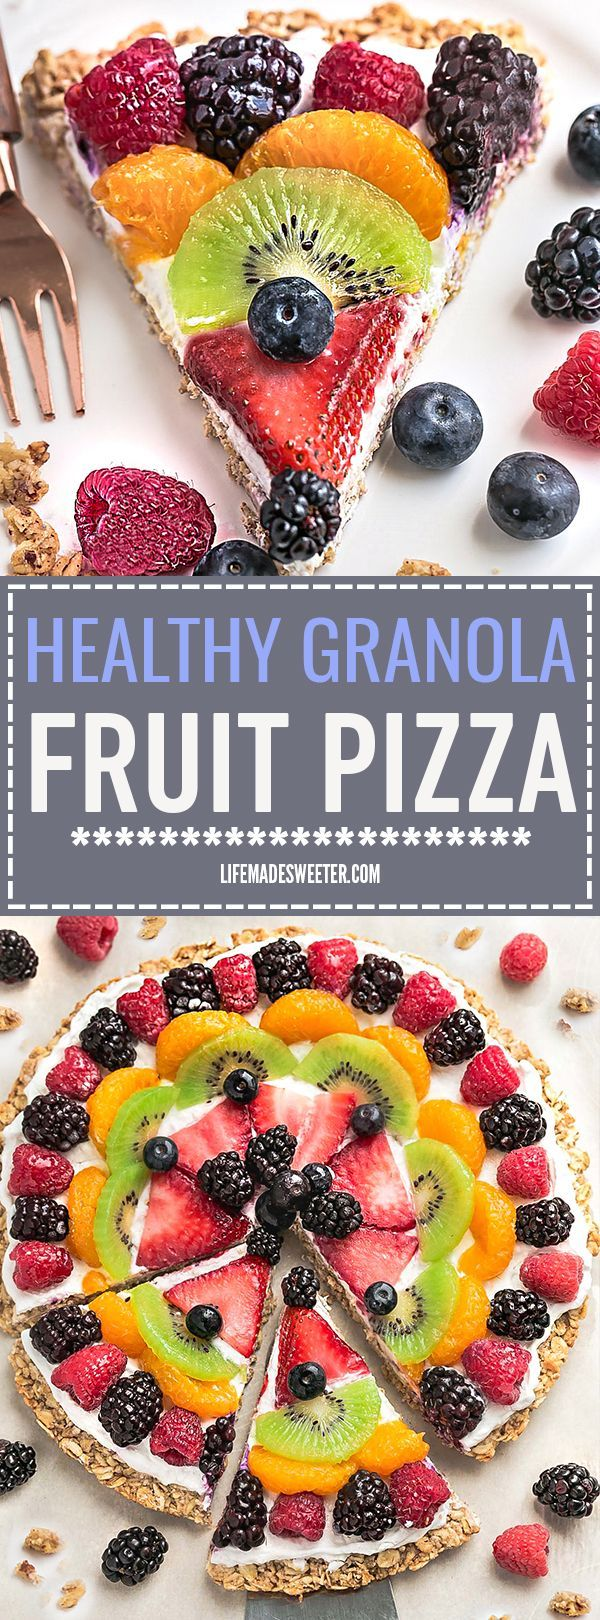 This Breakfast Fruit Pizza makes the perfect healthy and extra special breakfast, brunch or dessert. Best of all, it's so easy to make in less than 30 minutes with your favorite fresh fruit, a gluten